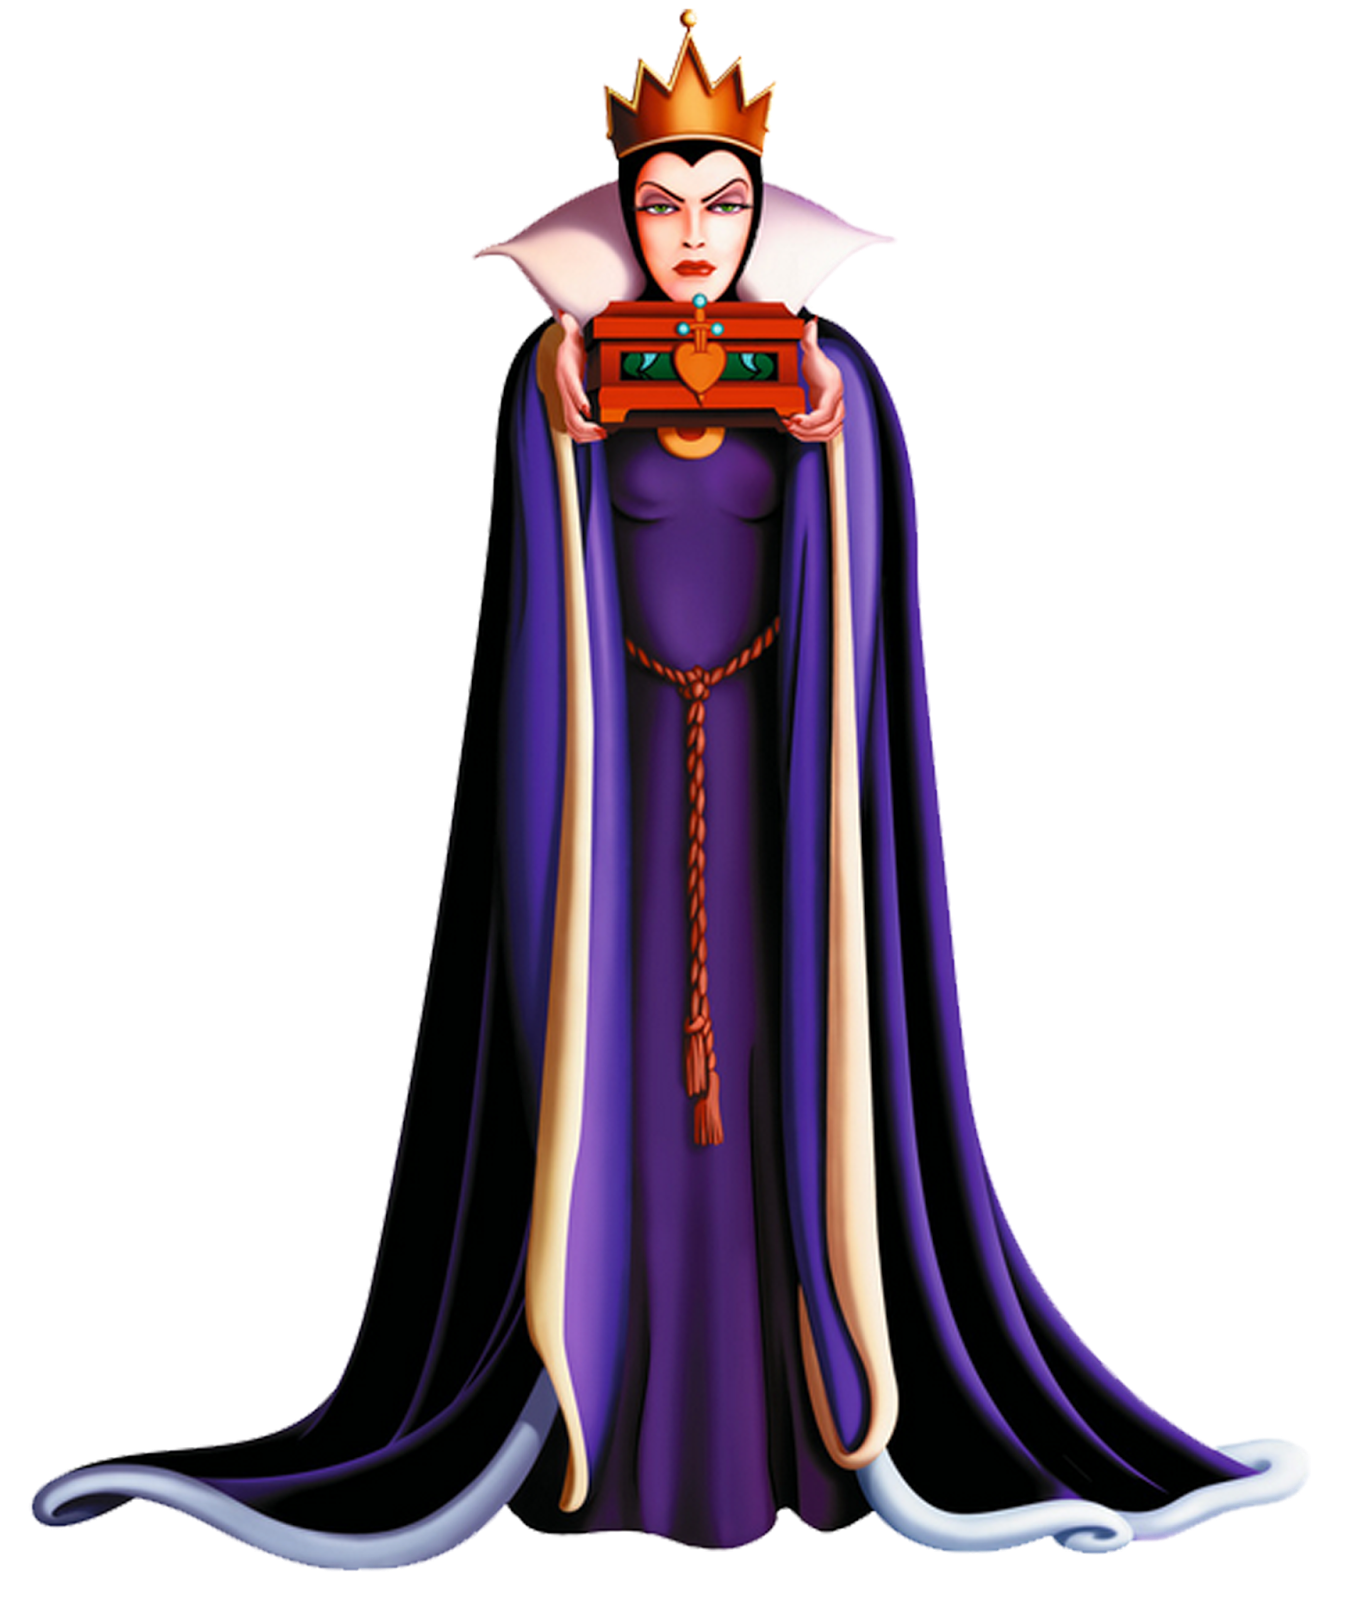 Analyzing the Disney Villains: The Evil Queen (Snow White)